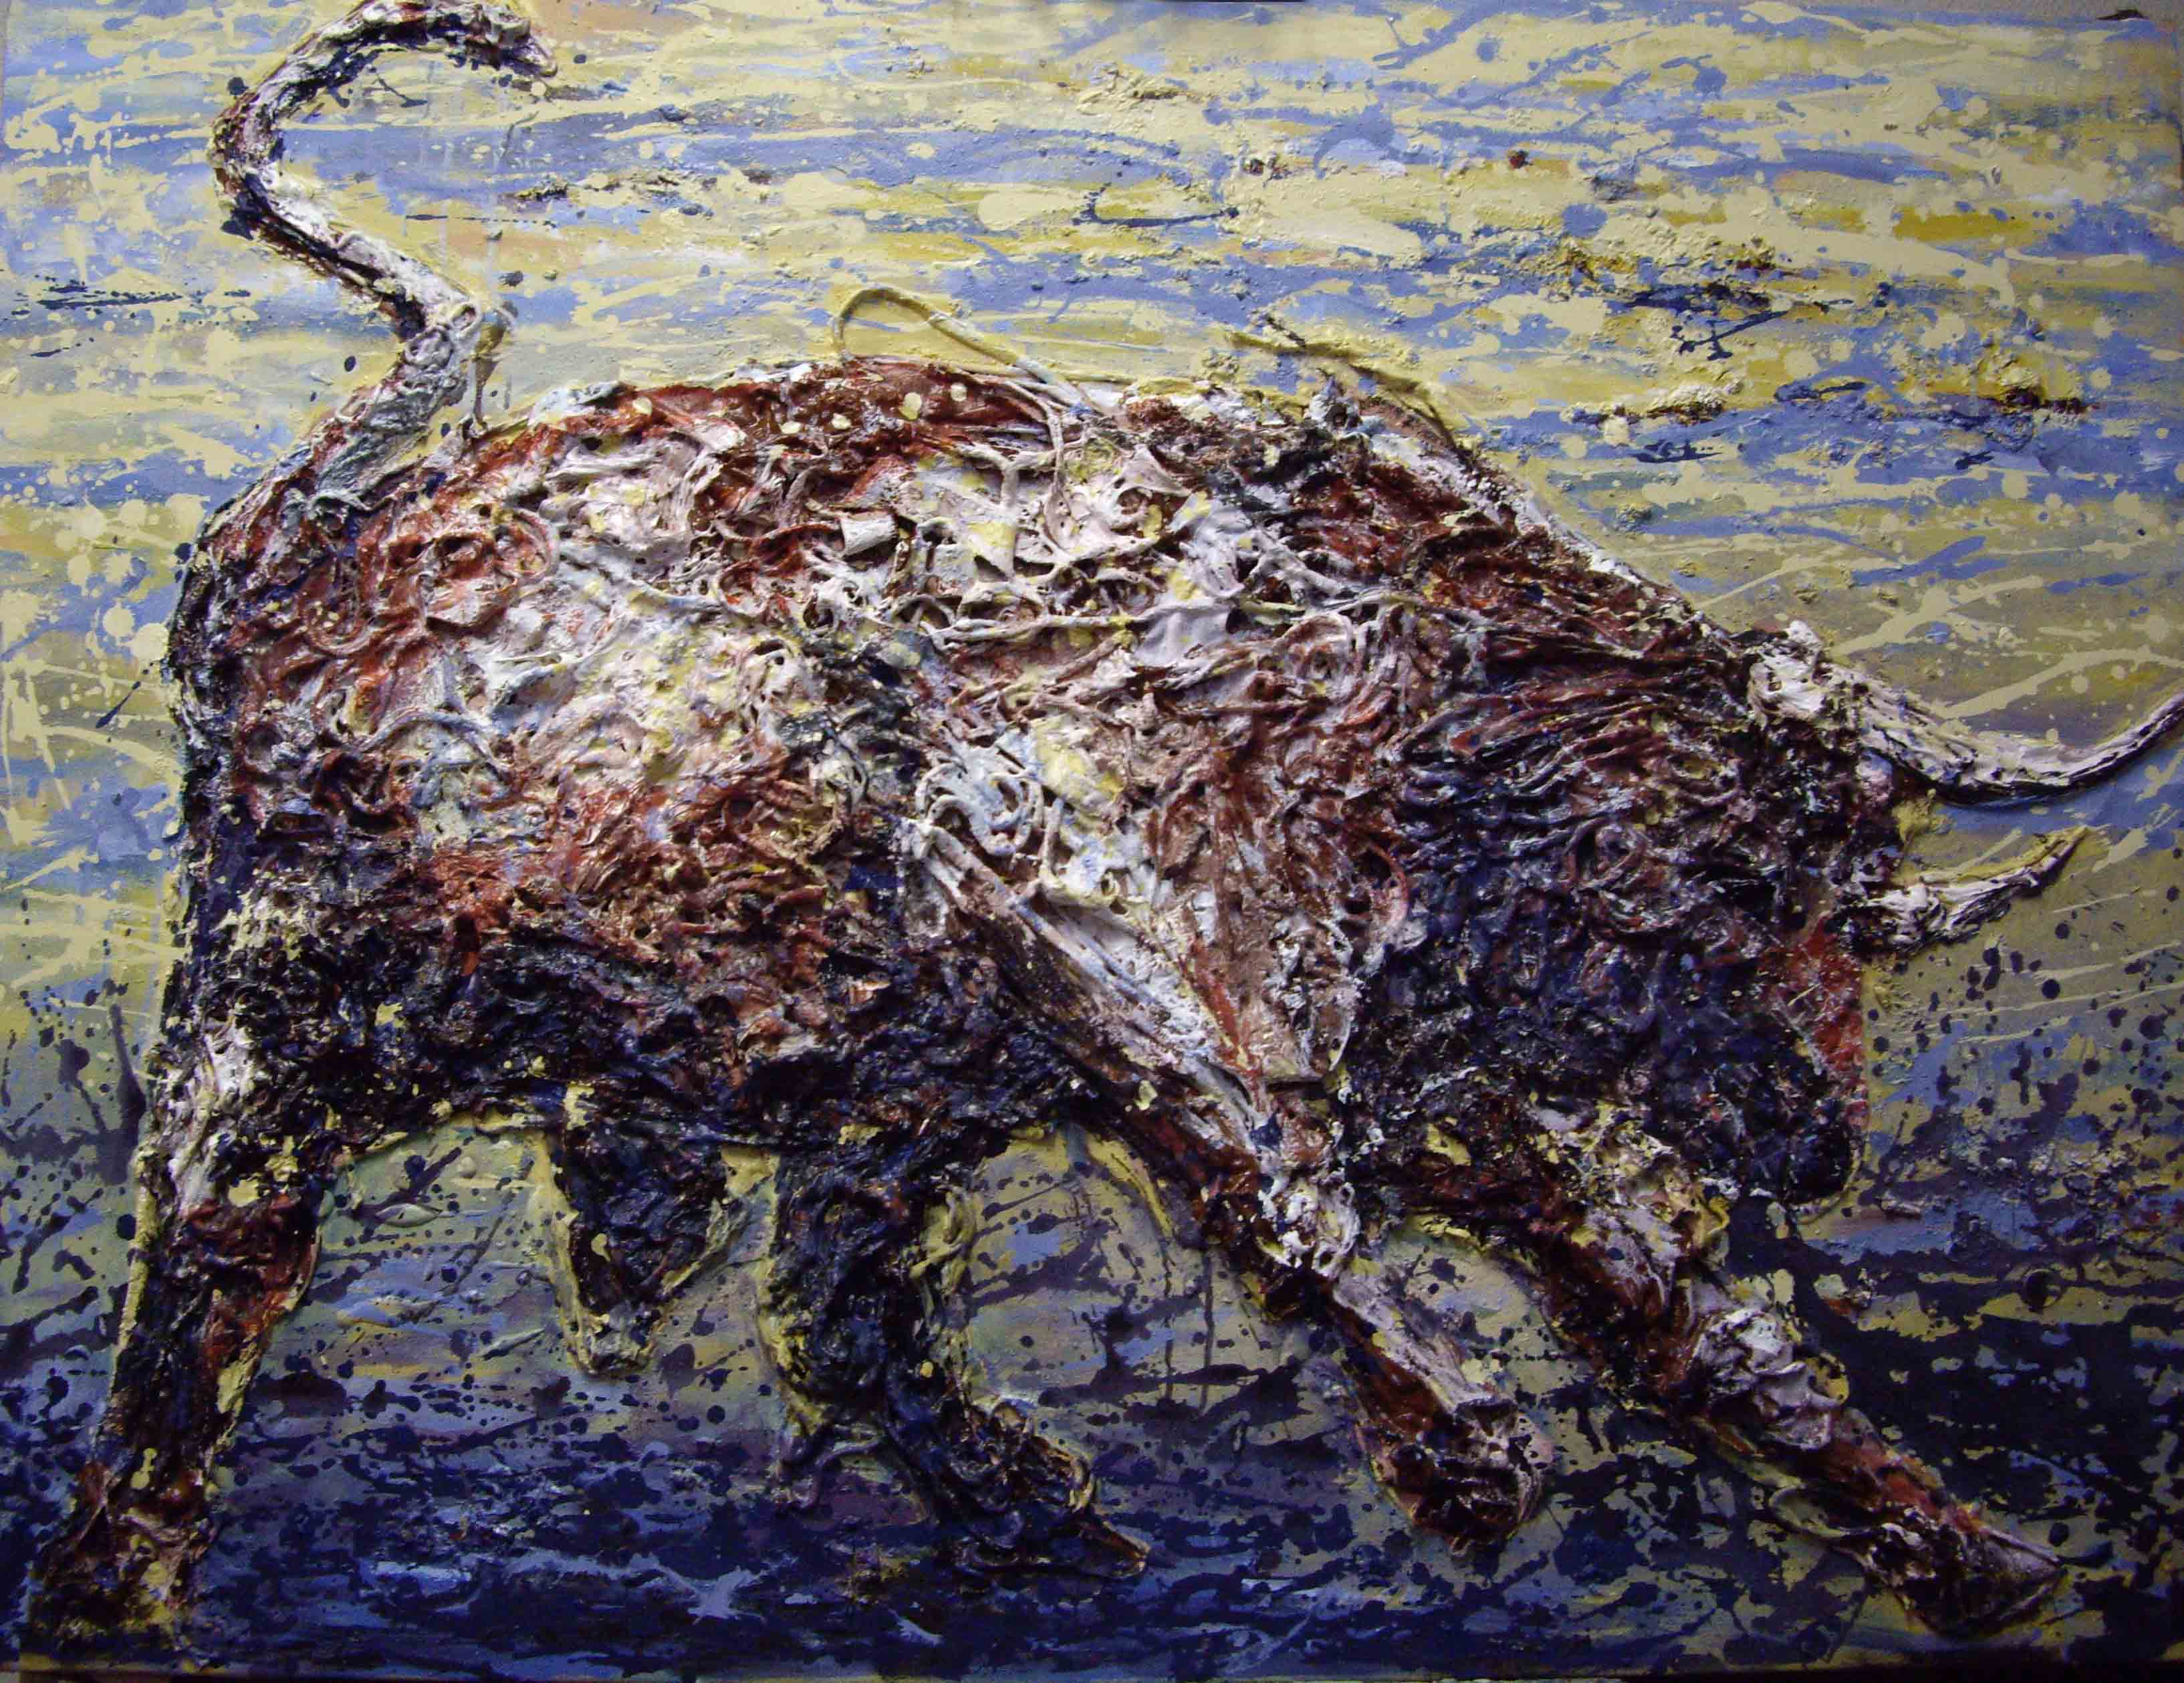 Bull in the marshlands